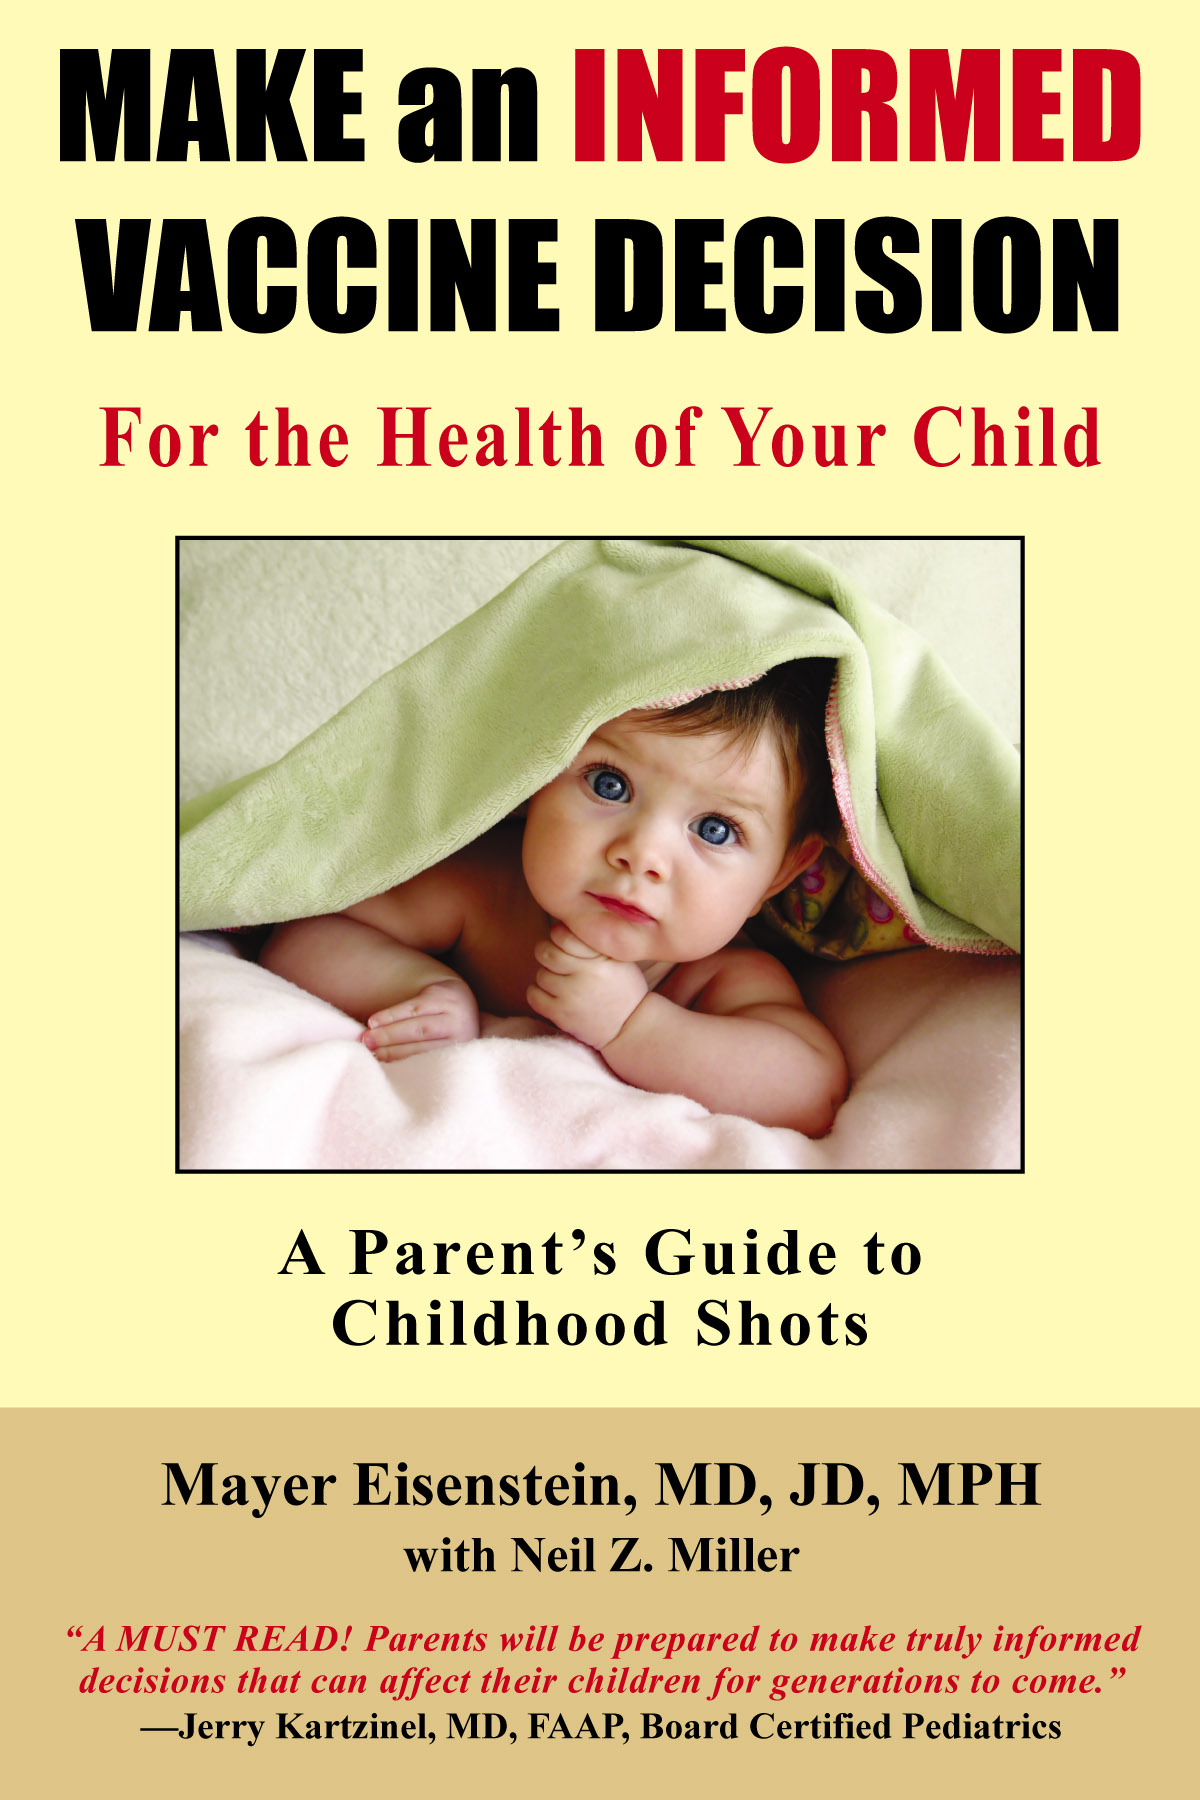 Make an Informed Vaccine Decision for the Health of Your Child